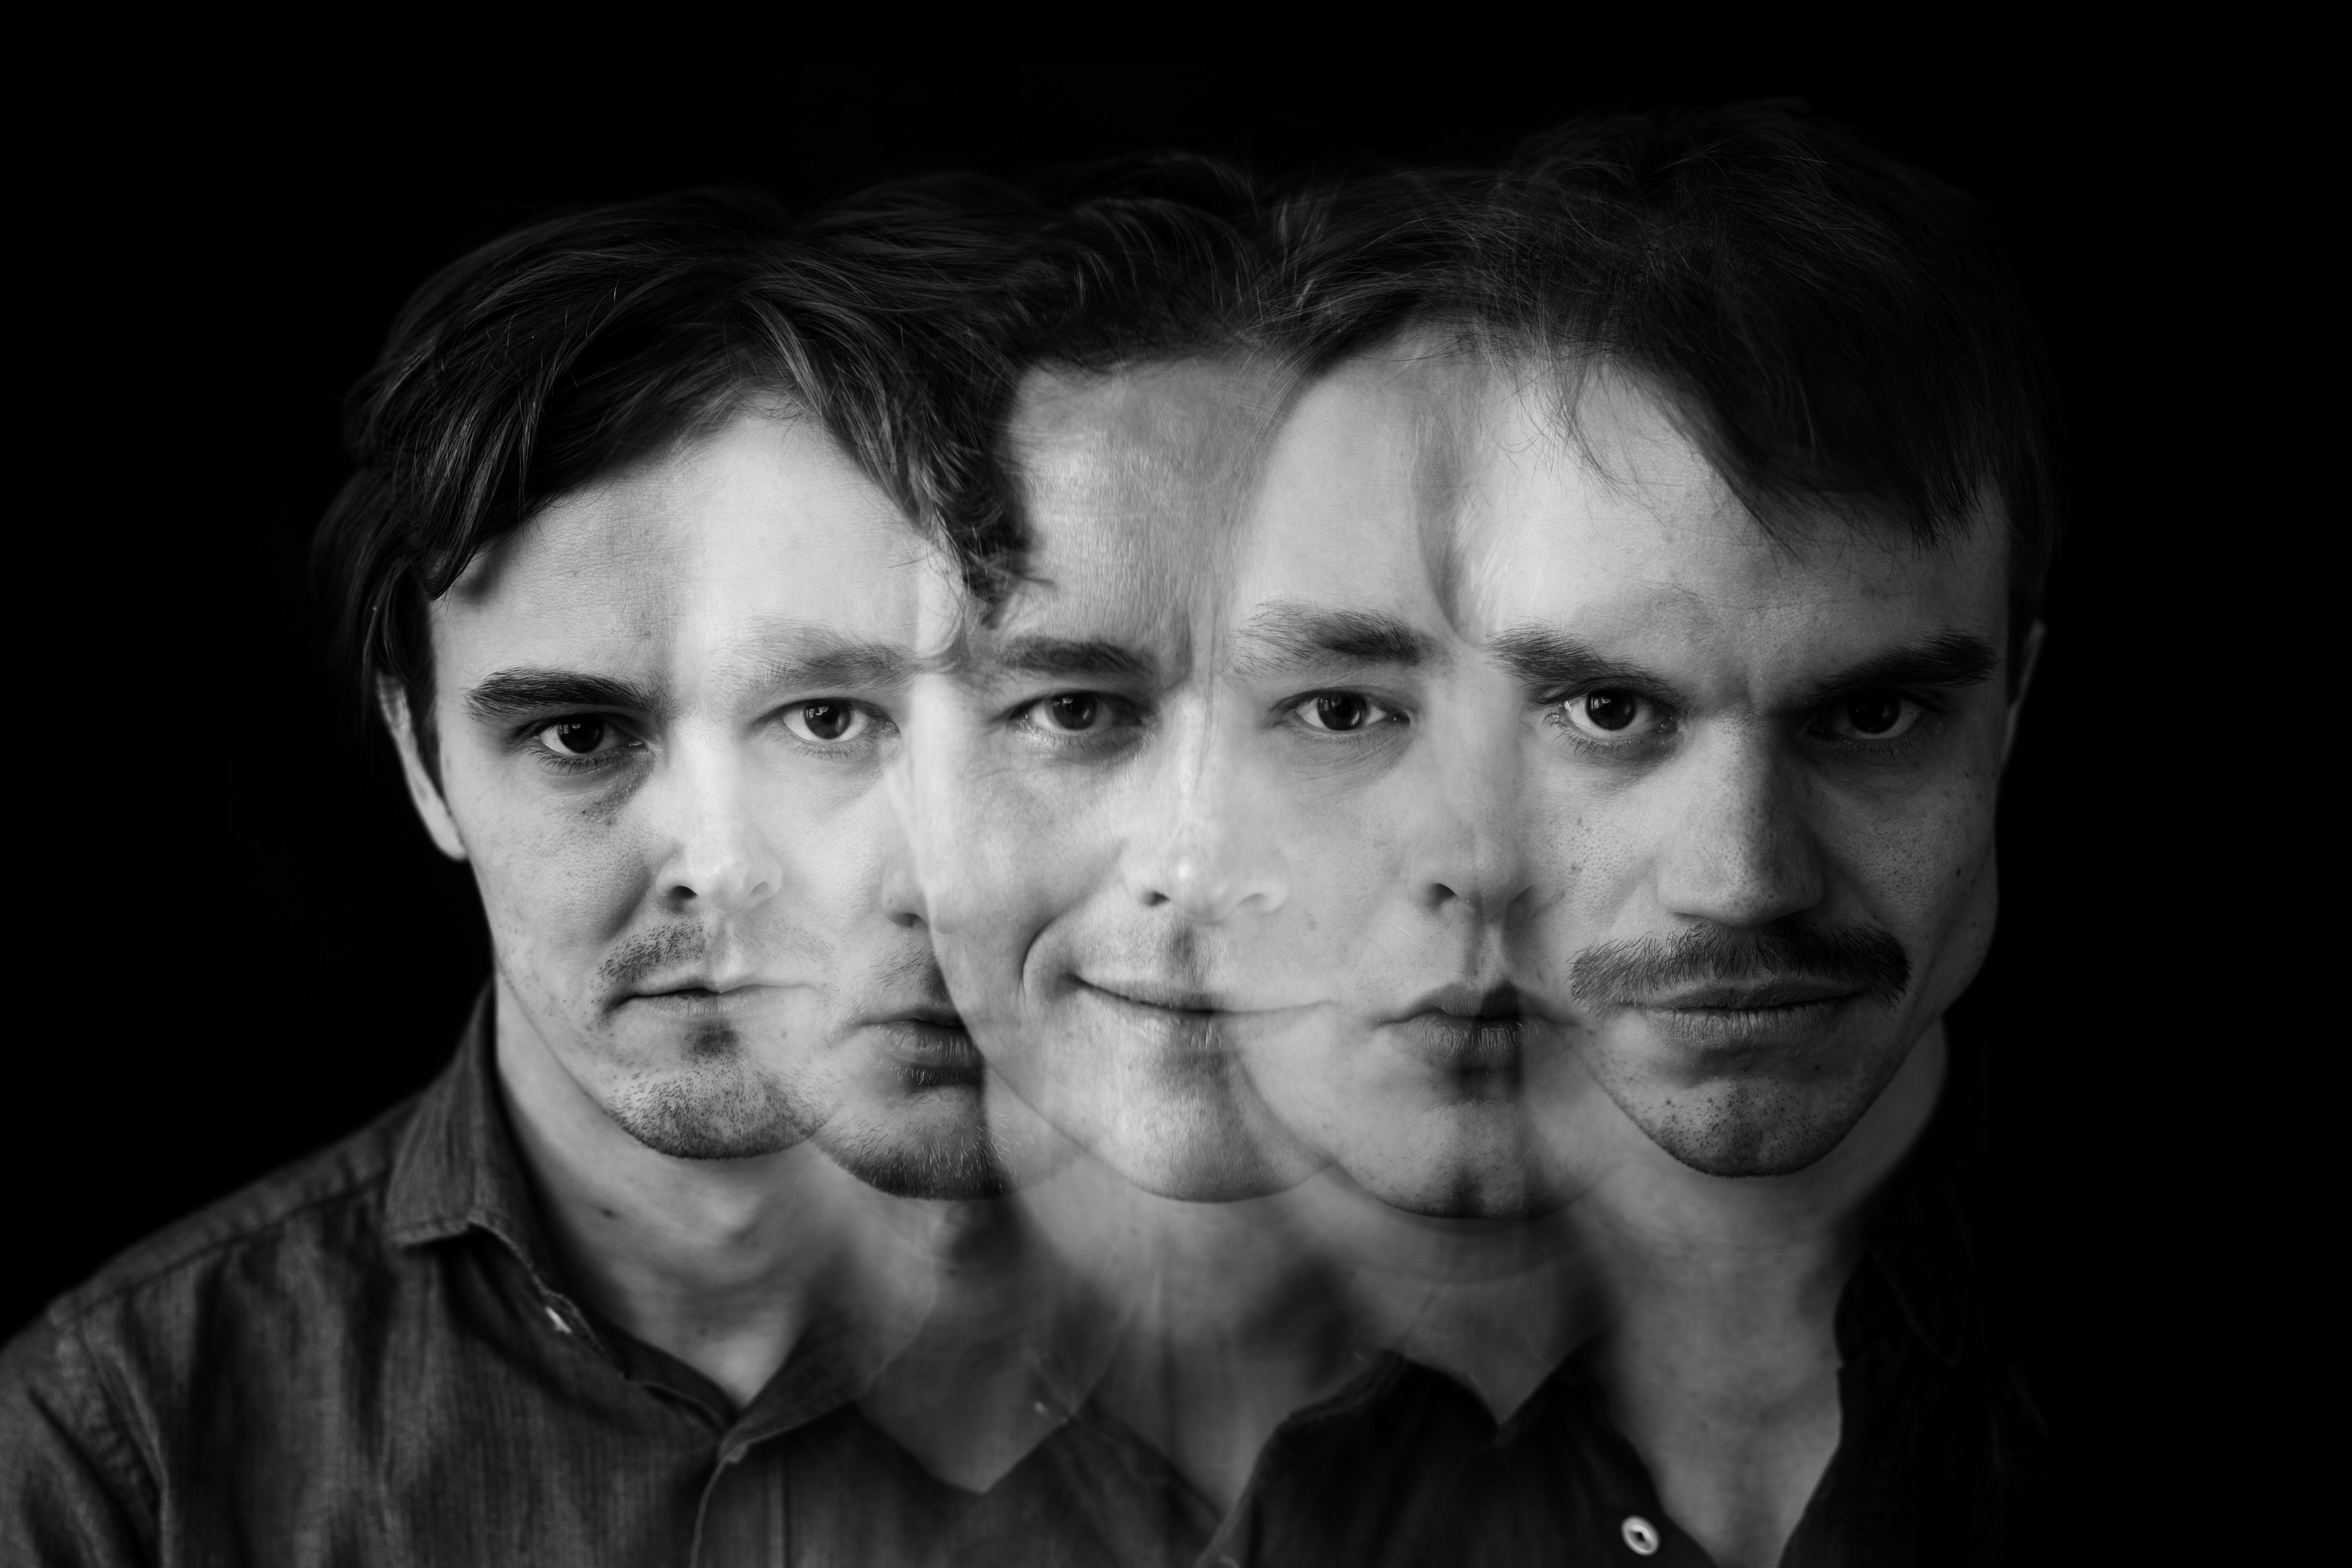 """Moonface and Siinai stream new track """"Them Call Themselves Old Punks."""""""